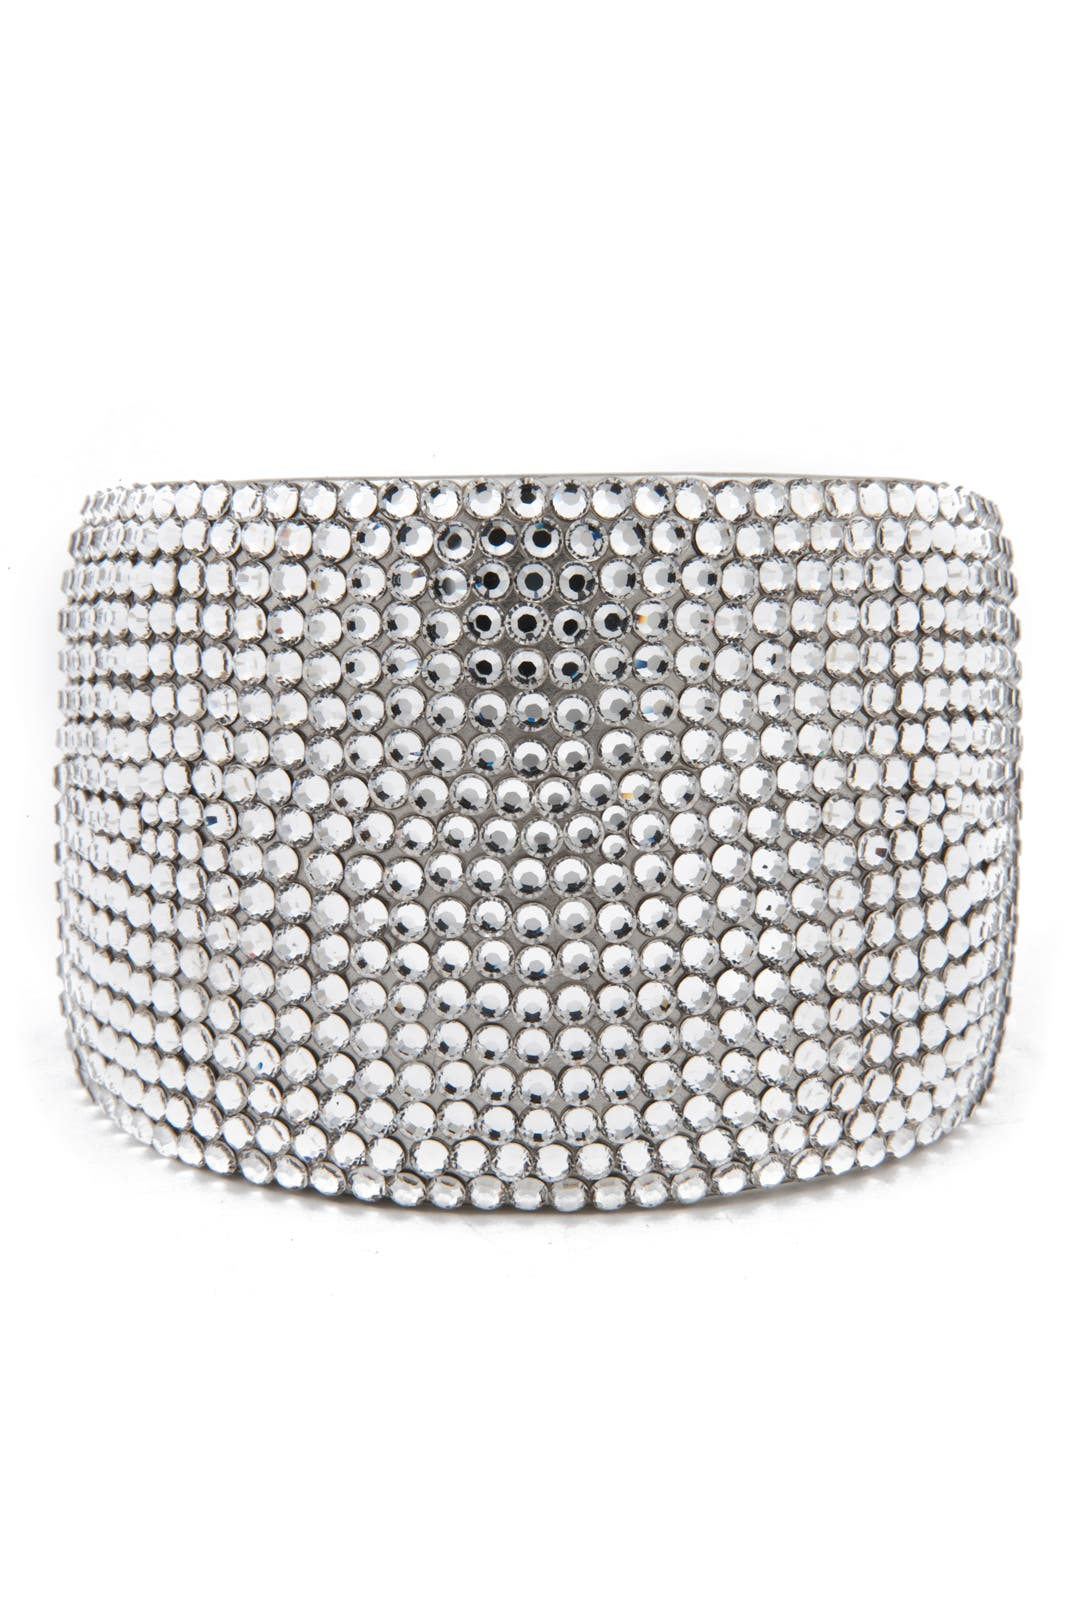 Celebrity Status Cuff by Kenneth Jay Lane